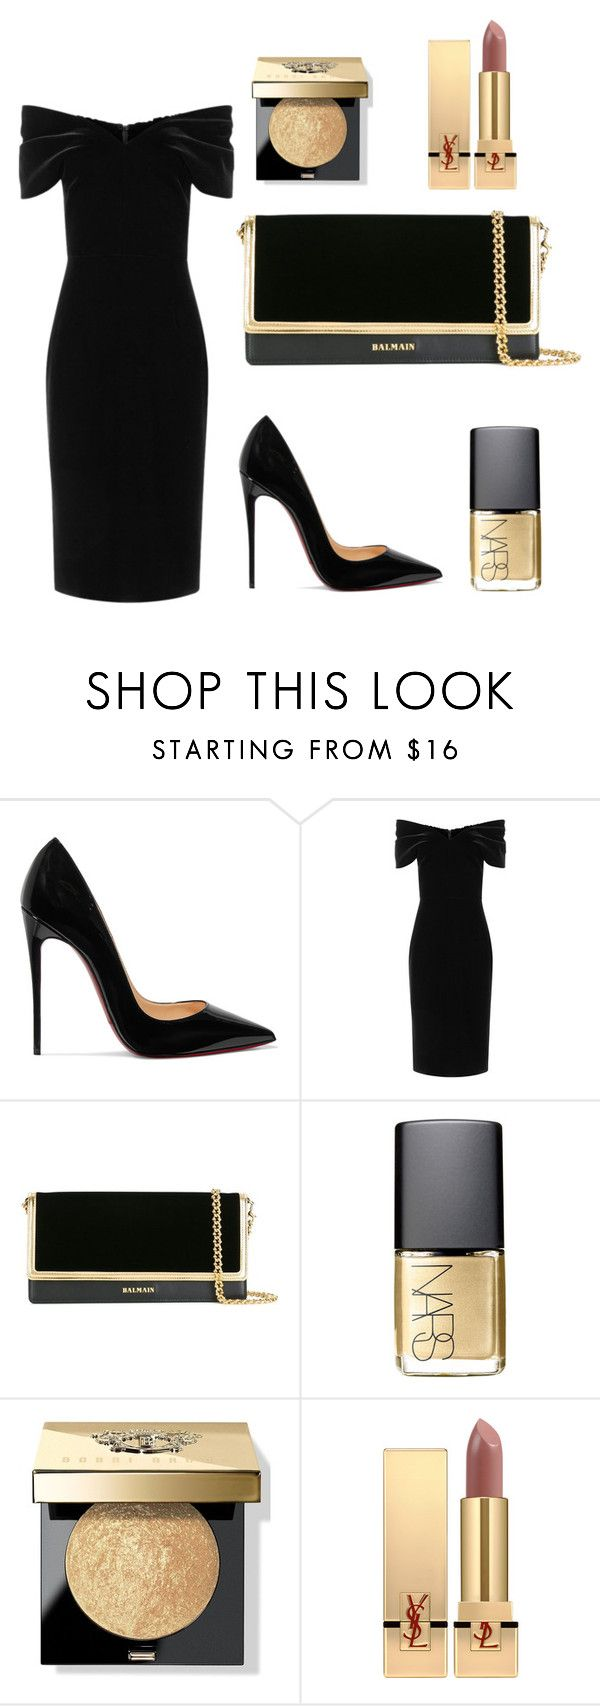 """Untitled #1"" by filippa-elvira-engsig ❤ liked on Polyvore featuring Christian Louboutin, Emilio De La Morena, Balmain, NARS Cosmetics, Bobbi Brown Cosmetics and Yves Saint Laurent"